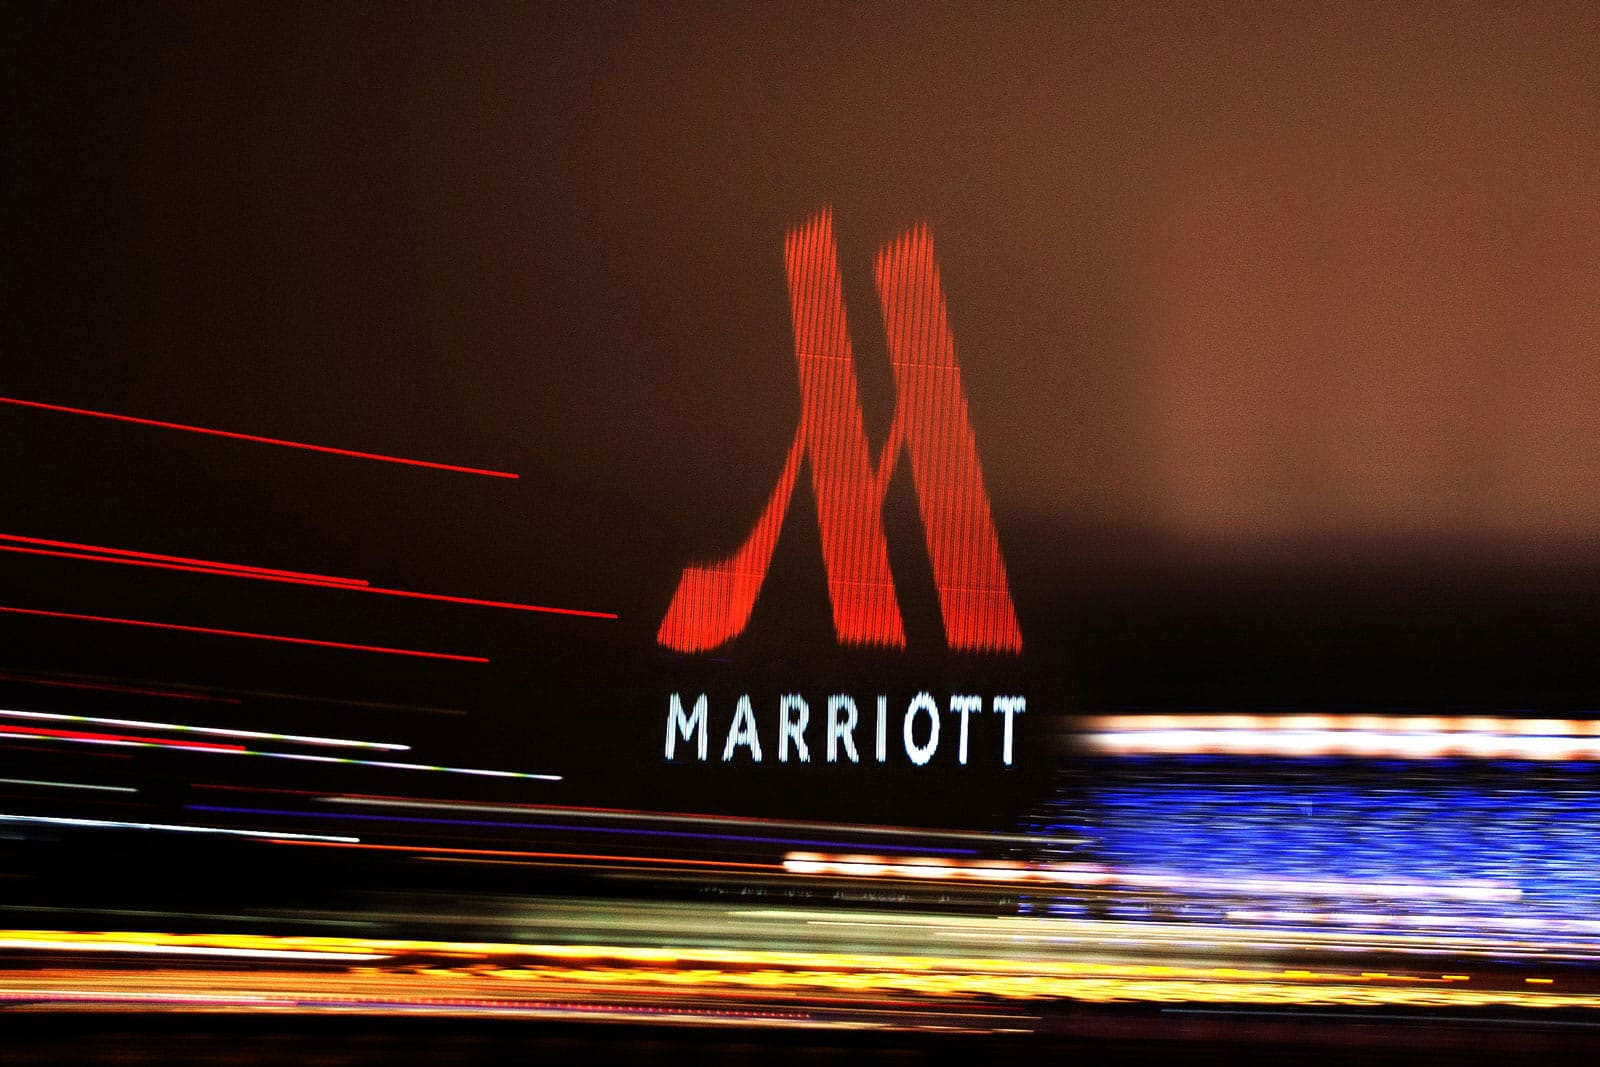 Marriot Night